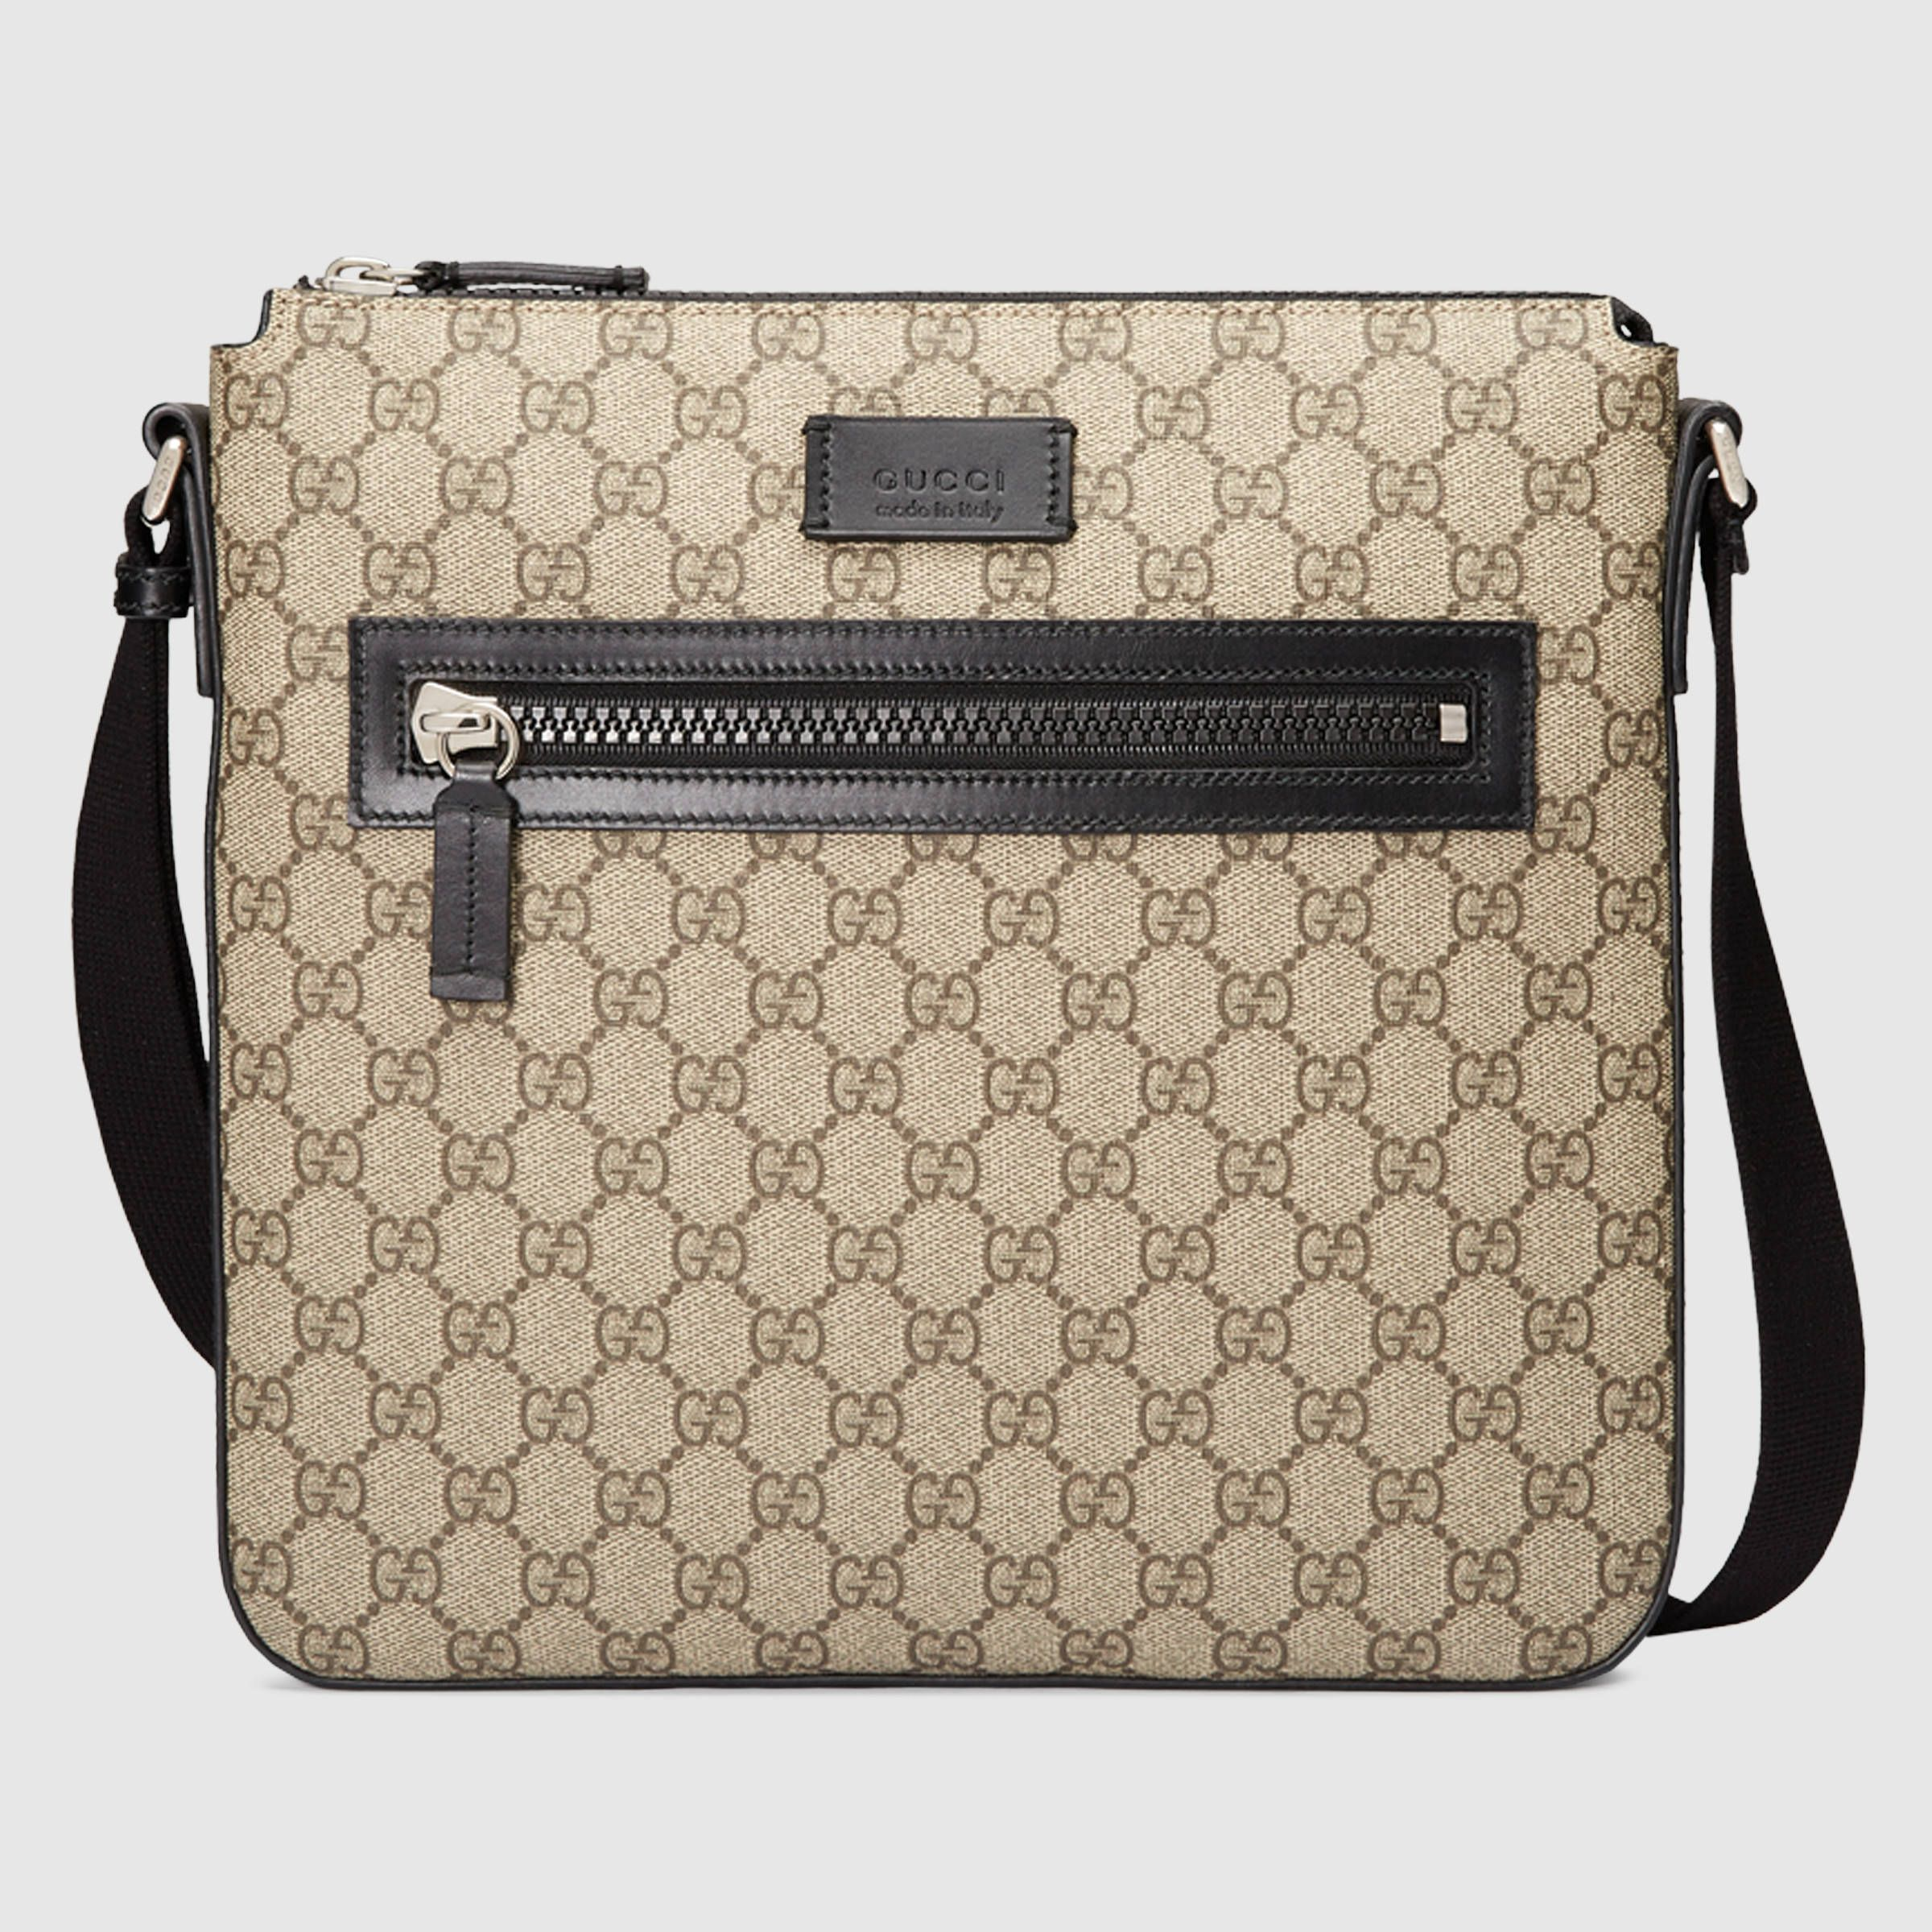 Gucci Sylvie Velvet GG Supreme Crossbody Bag